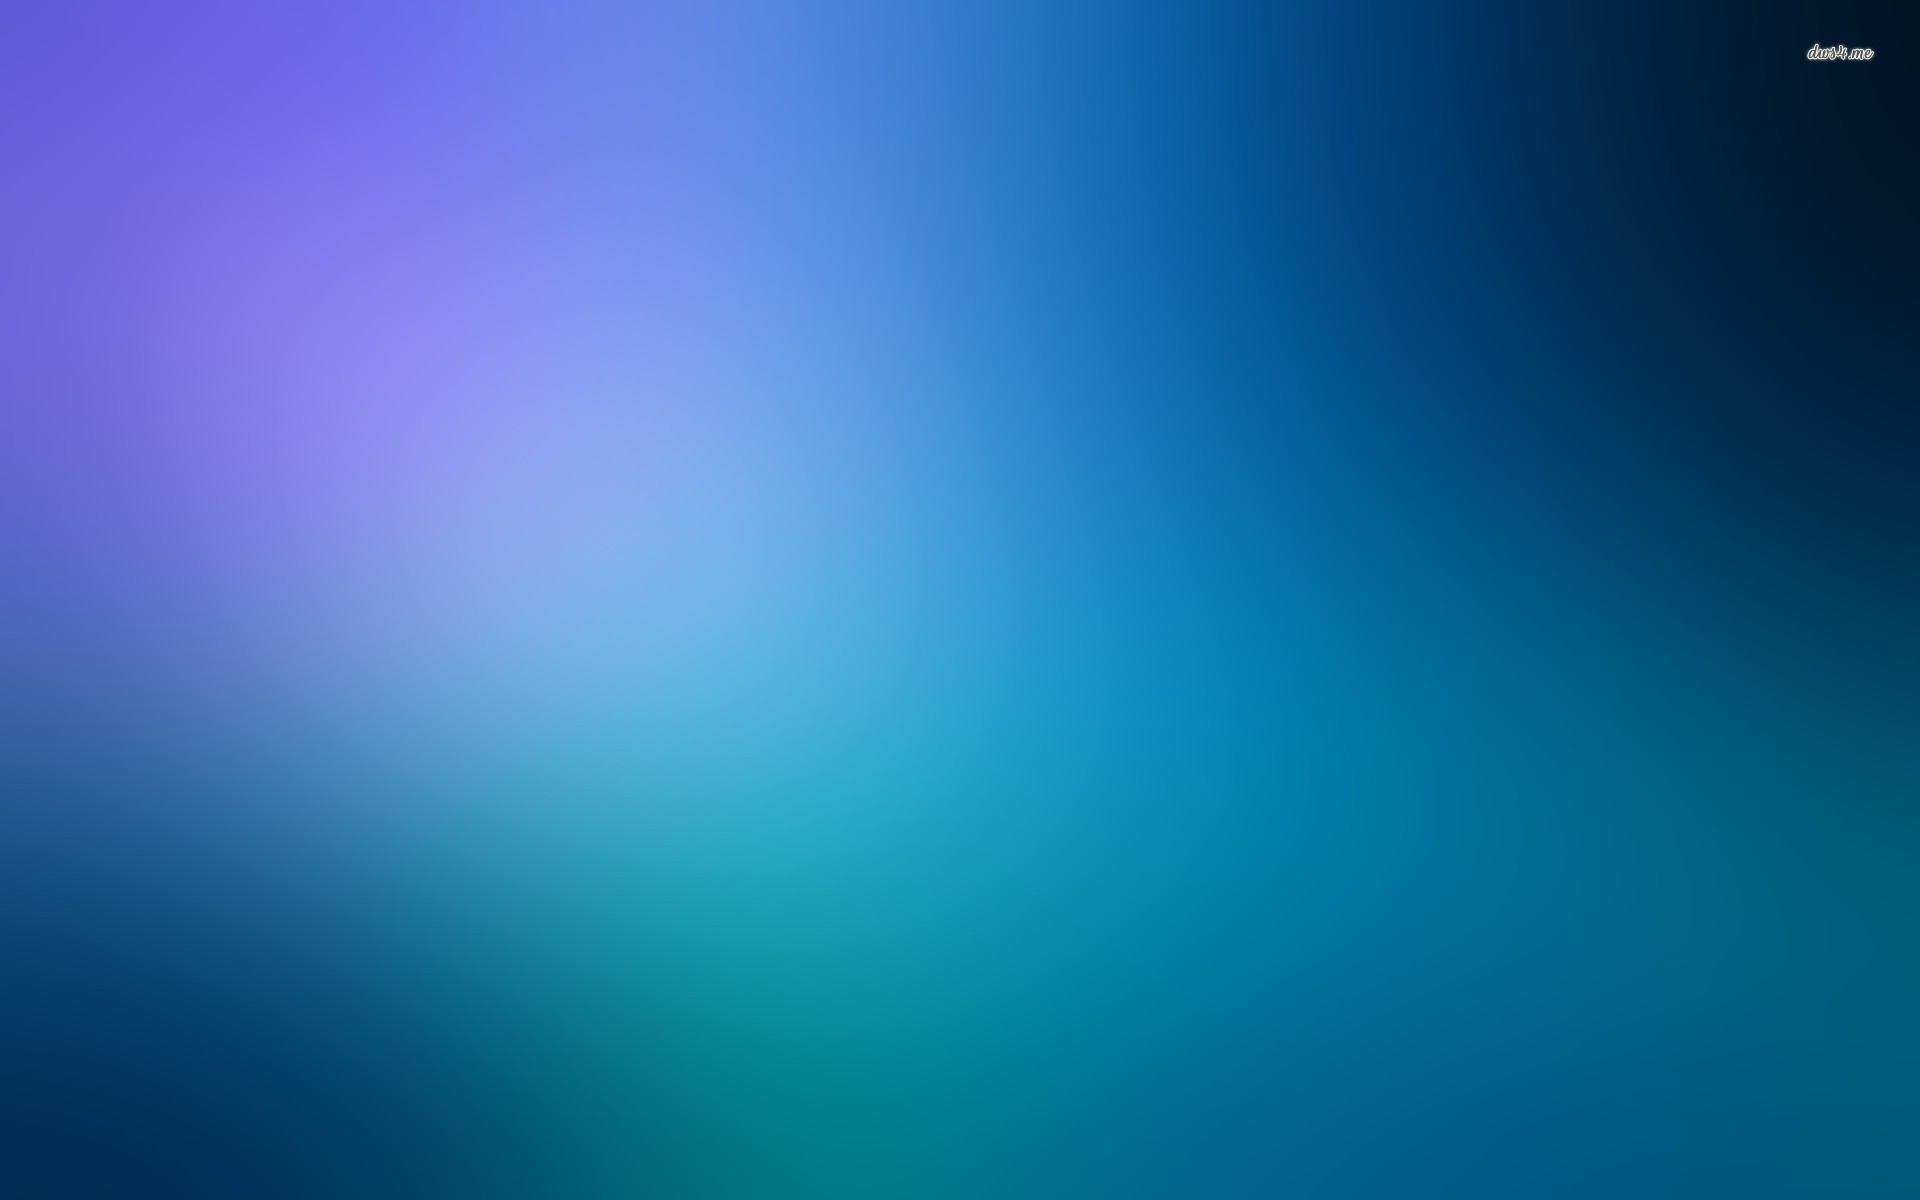 Blue gradient wallpaper   Abstract wallpapers   14562 1920x1200